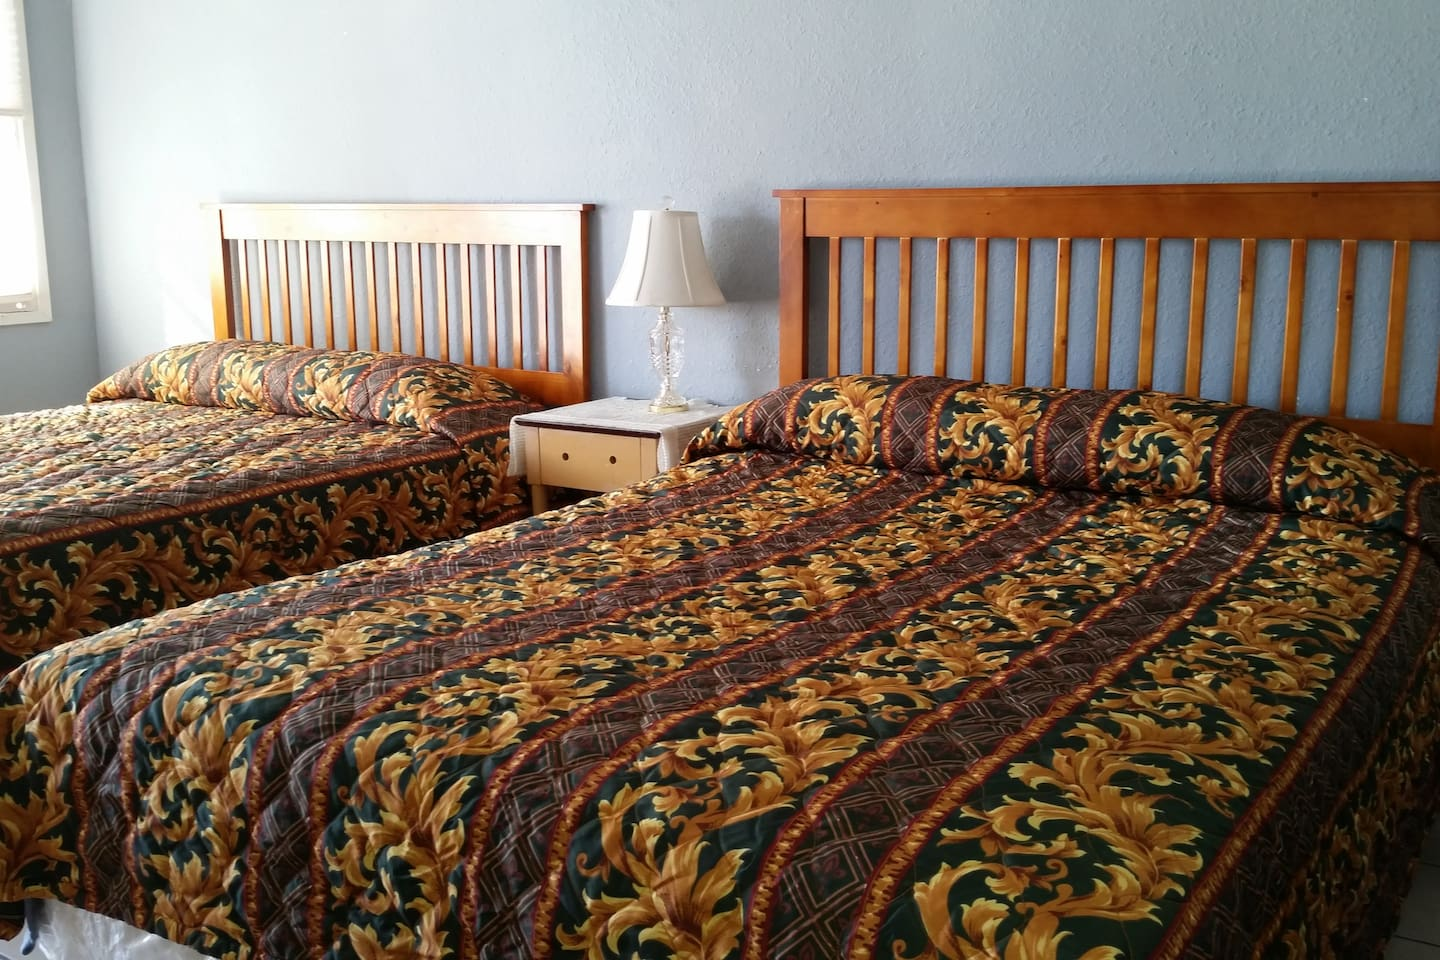 Two cozy queen size beds